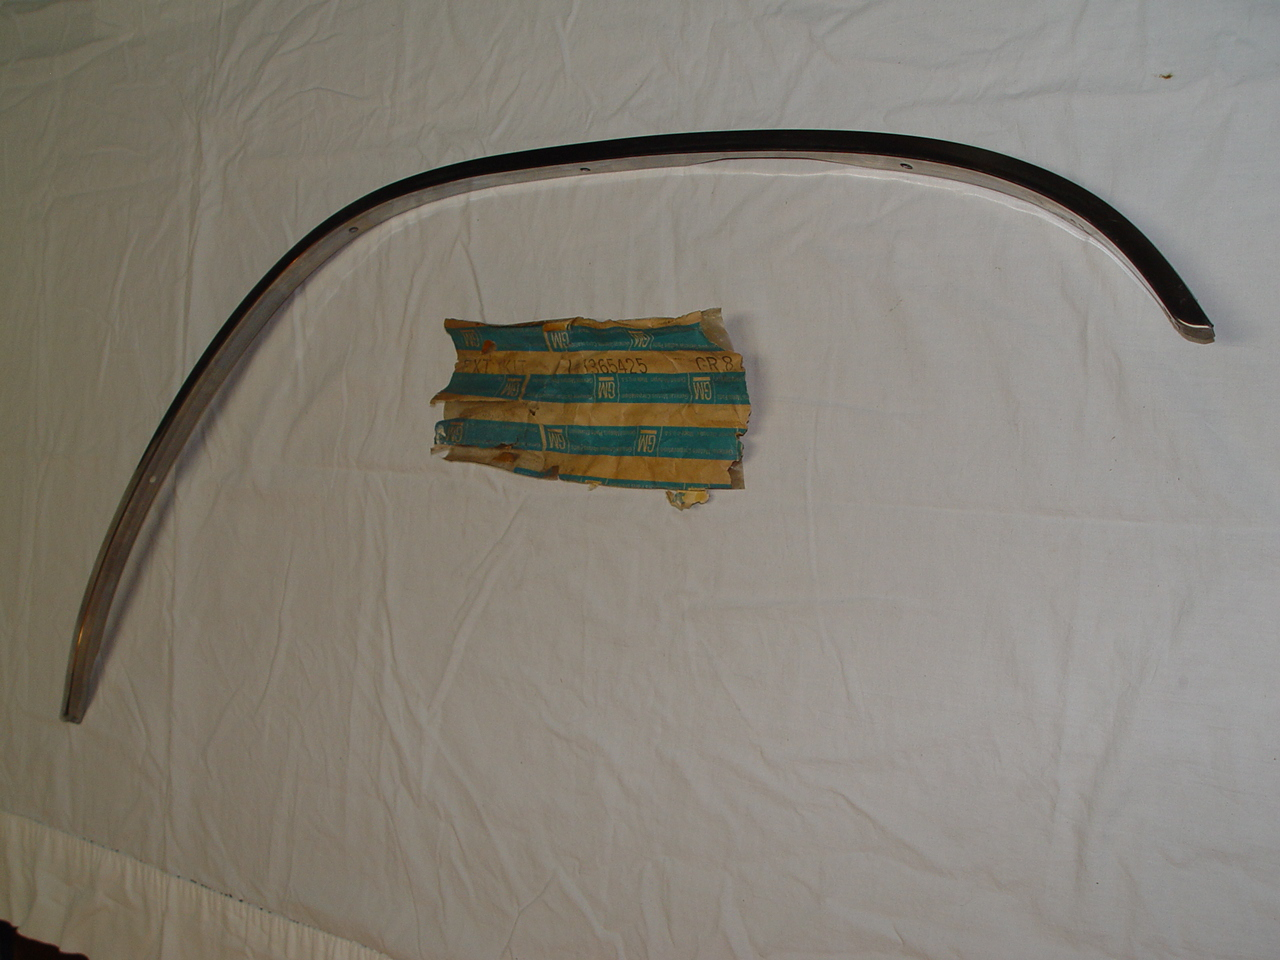 1964 Buick Right Front Wheel Opening Molding